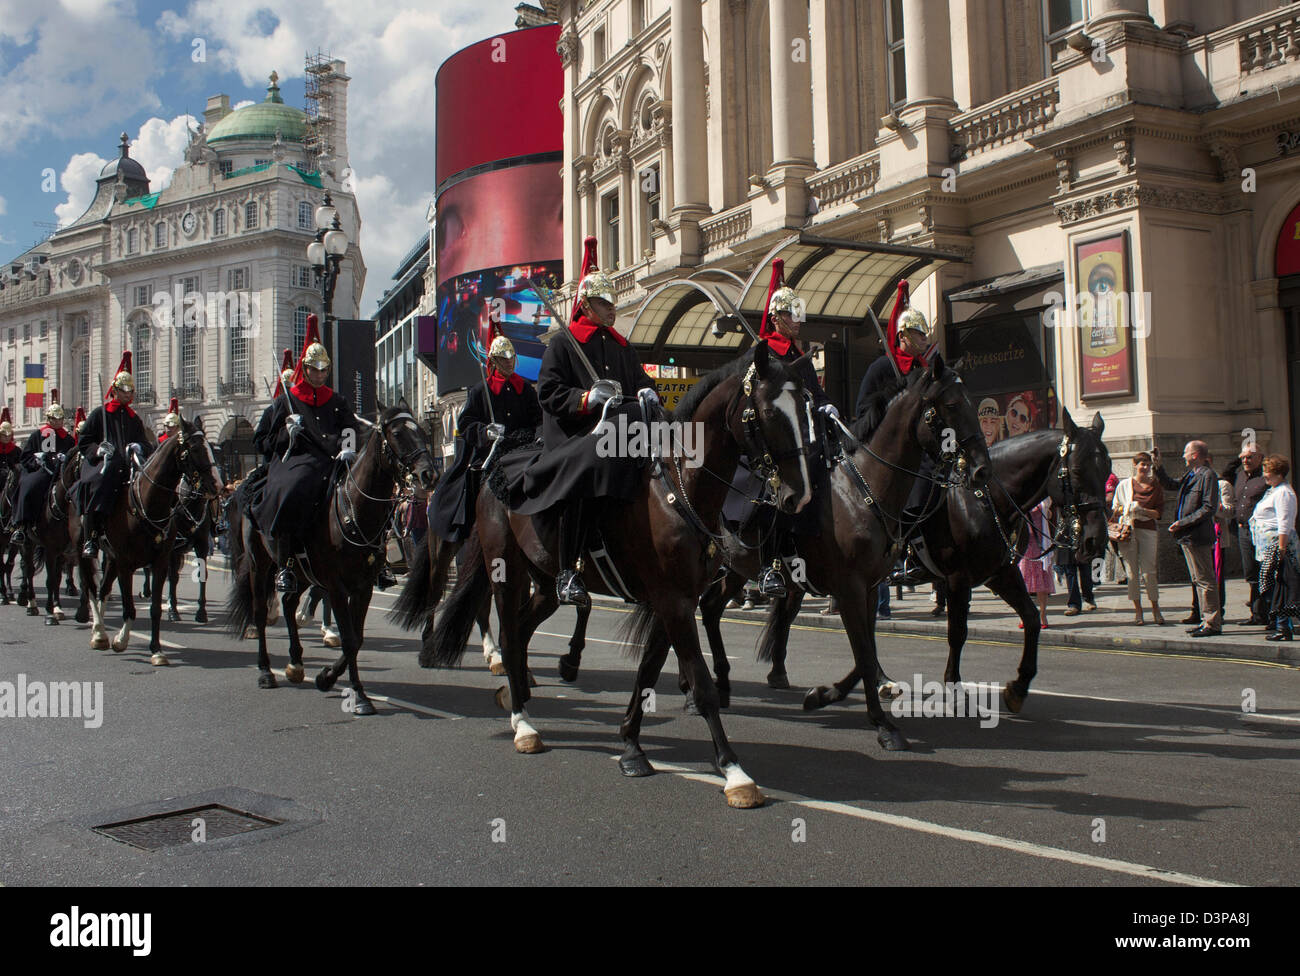 The Horse Guard Cavalry parading through Piccadilly Circus, London, England - Stock Image